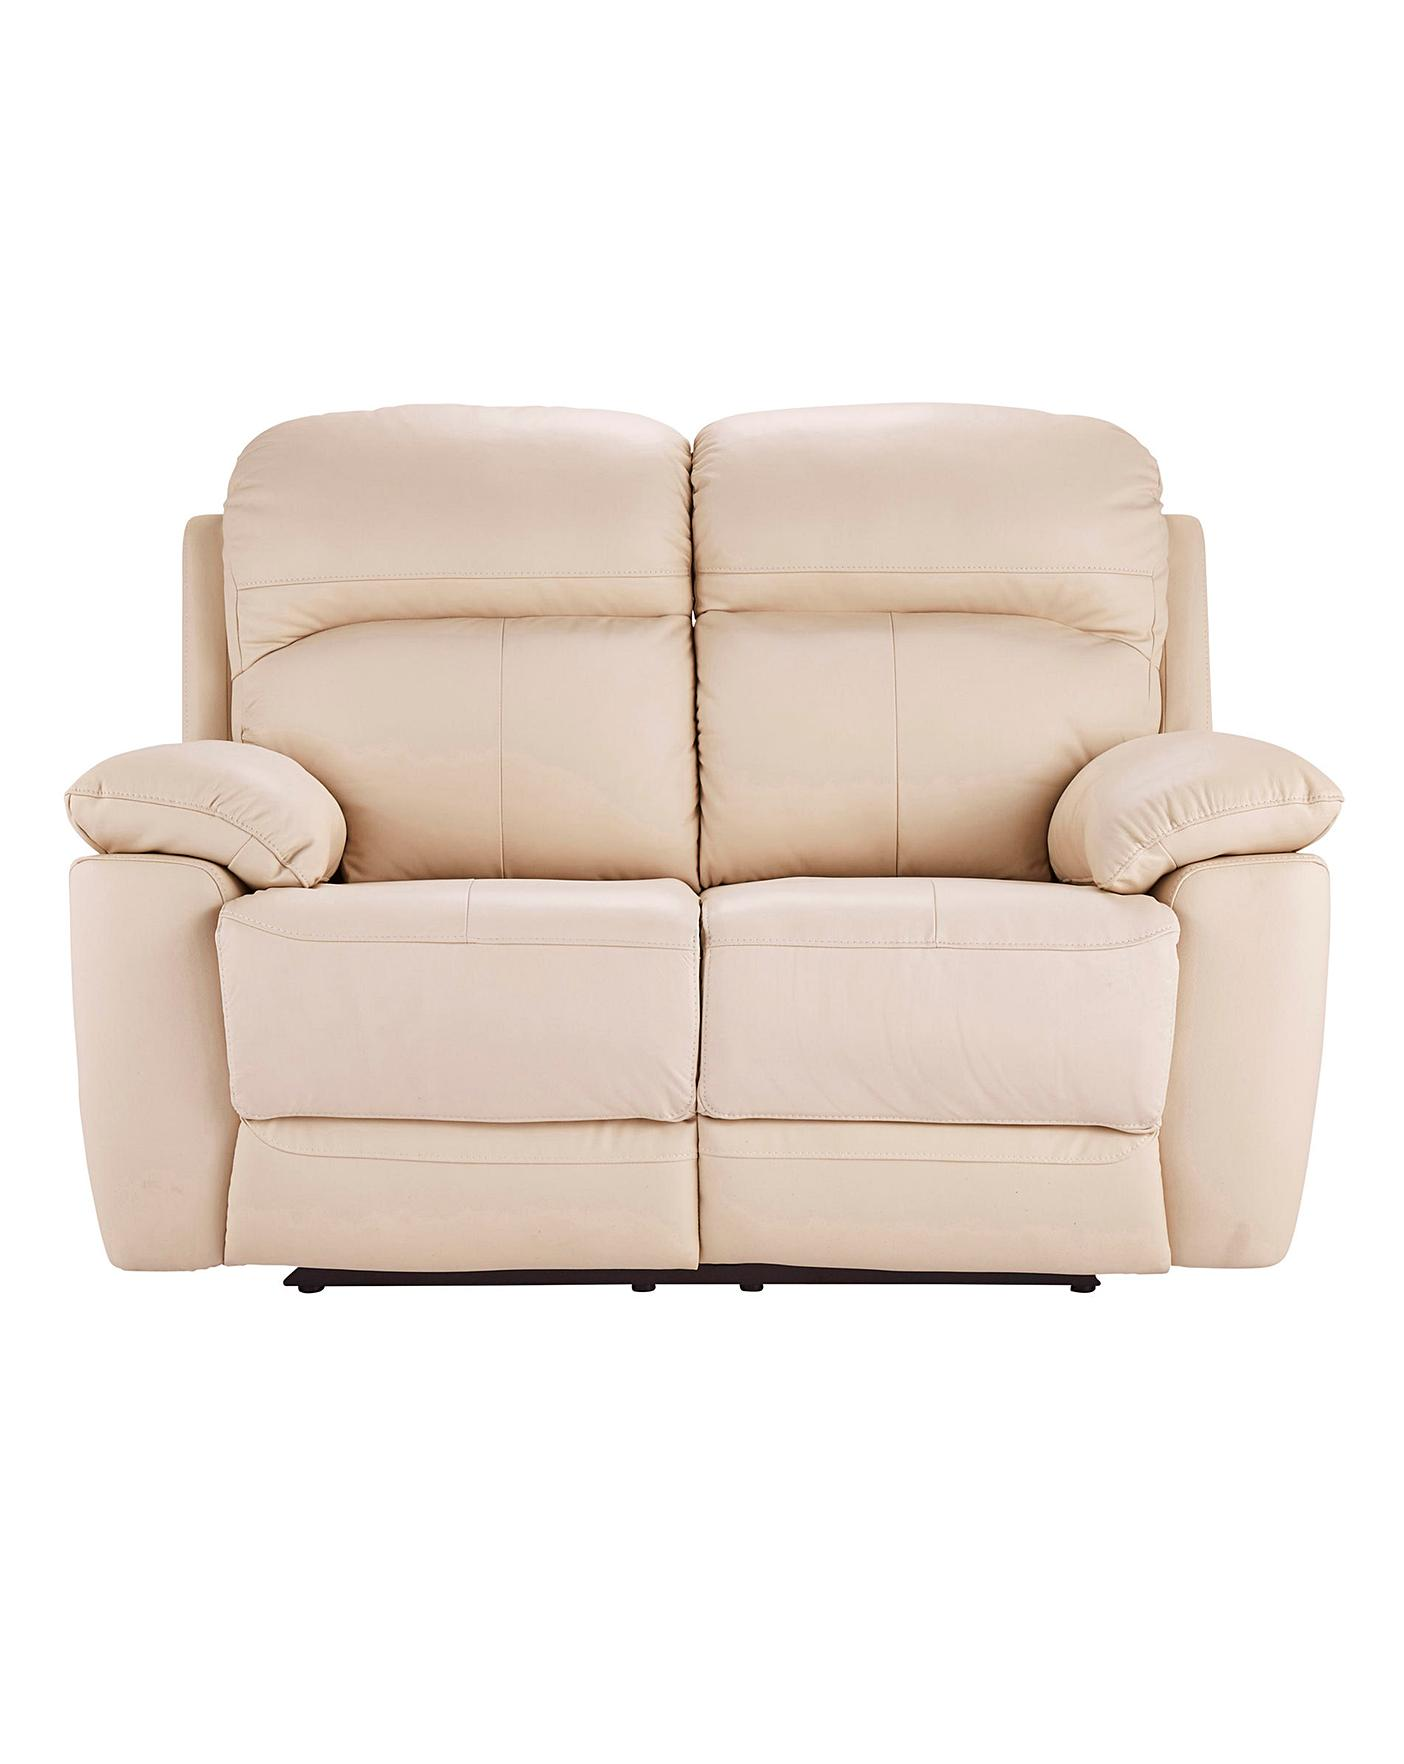 Roma Leather Recliner Two Seater Sofa